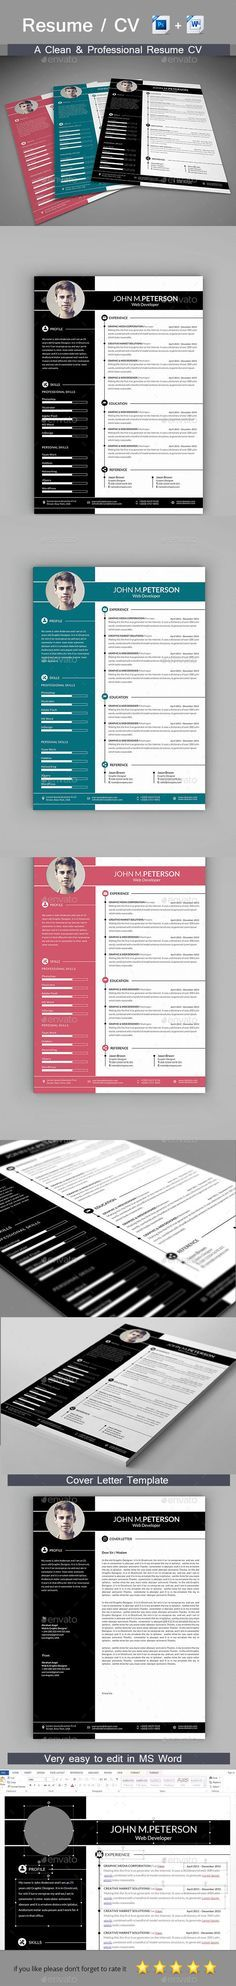 Resume by RealisticArt The perfect way to make the best impression. Strong typographic structure and very easy to use and customise. resume have a Simple Resume Template, Resume Design Template, Resume Templates, Graphic Design Cv, Infographic Resume, Le Cv, Presentation Design Template, Job Resume, Cover Letter For Resume